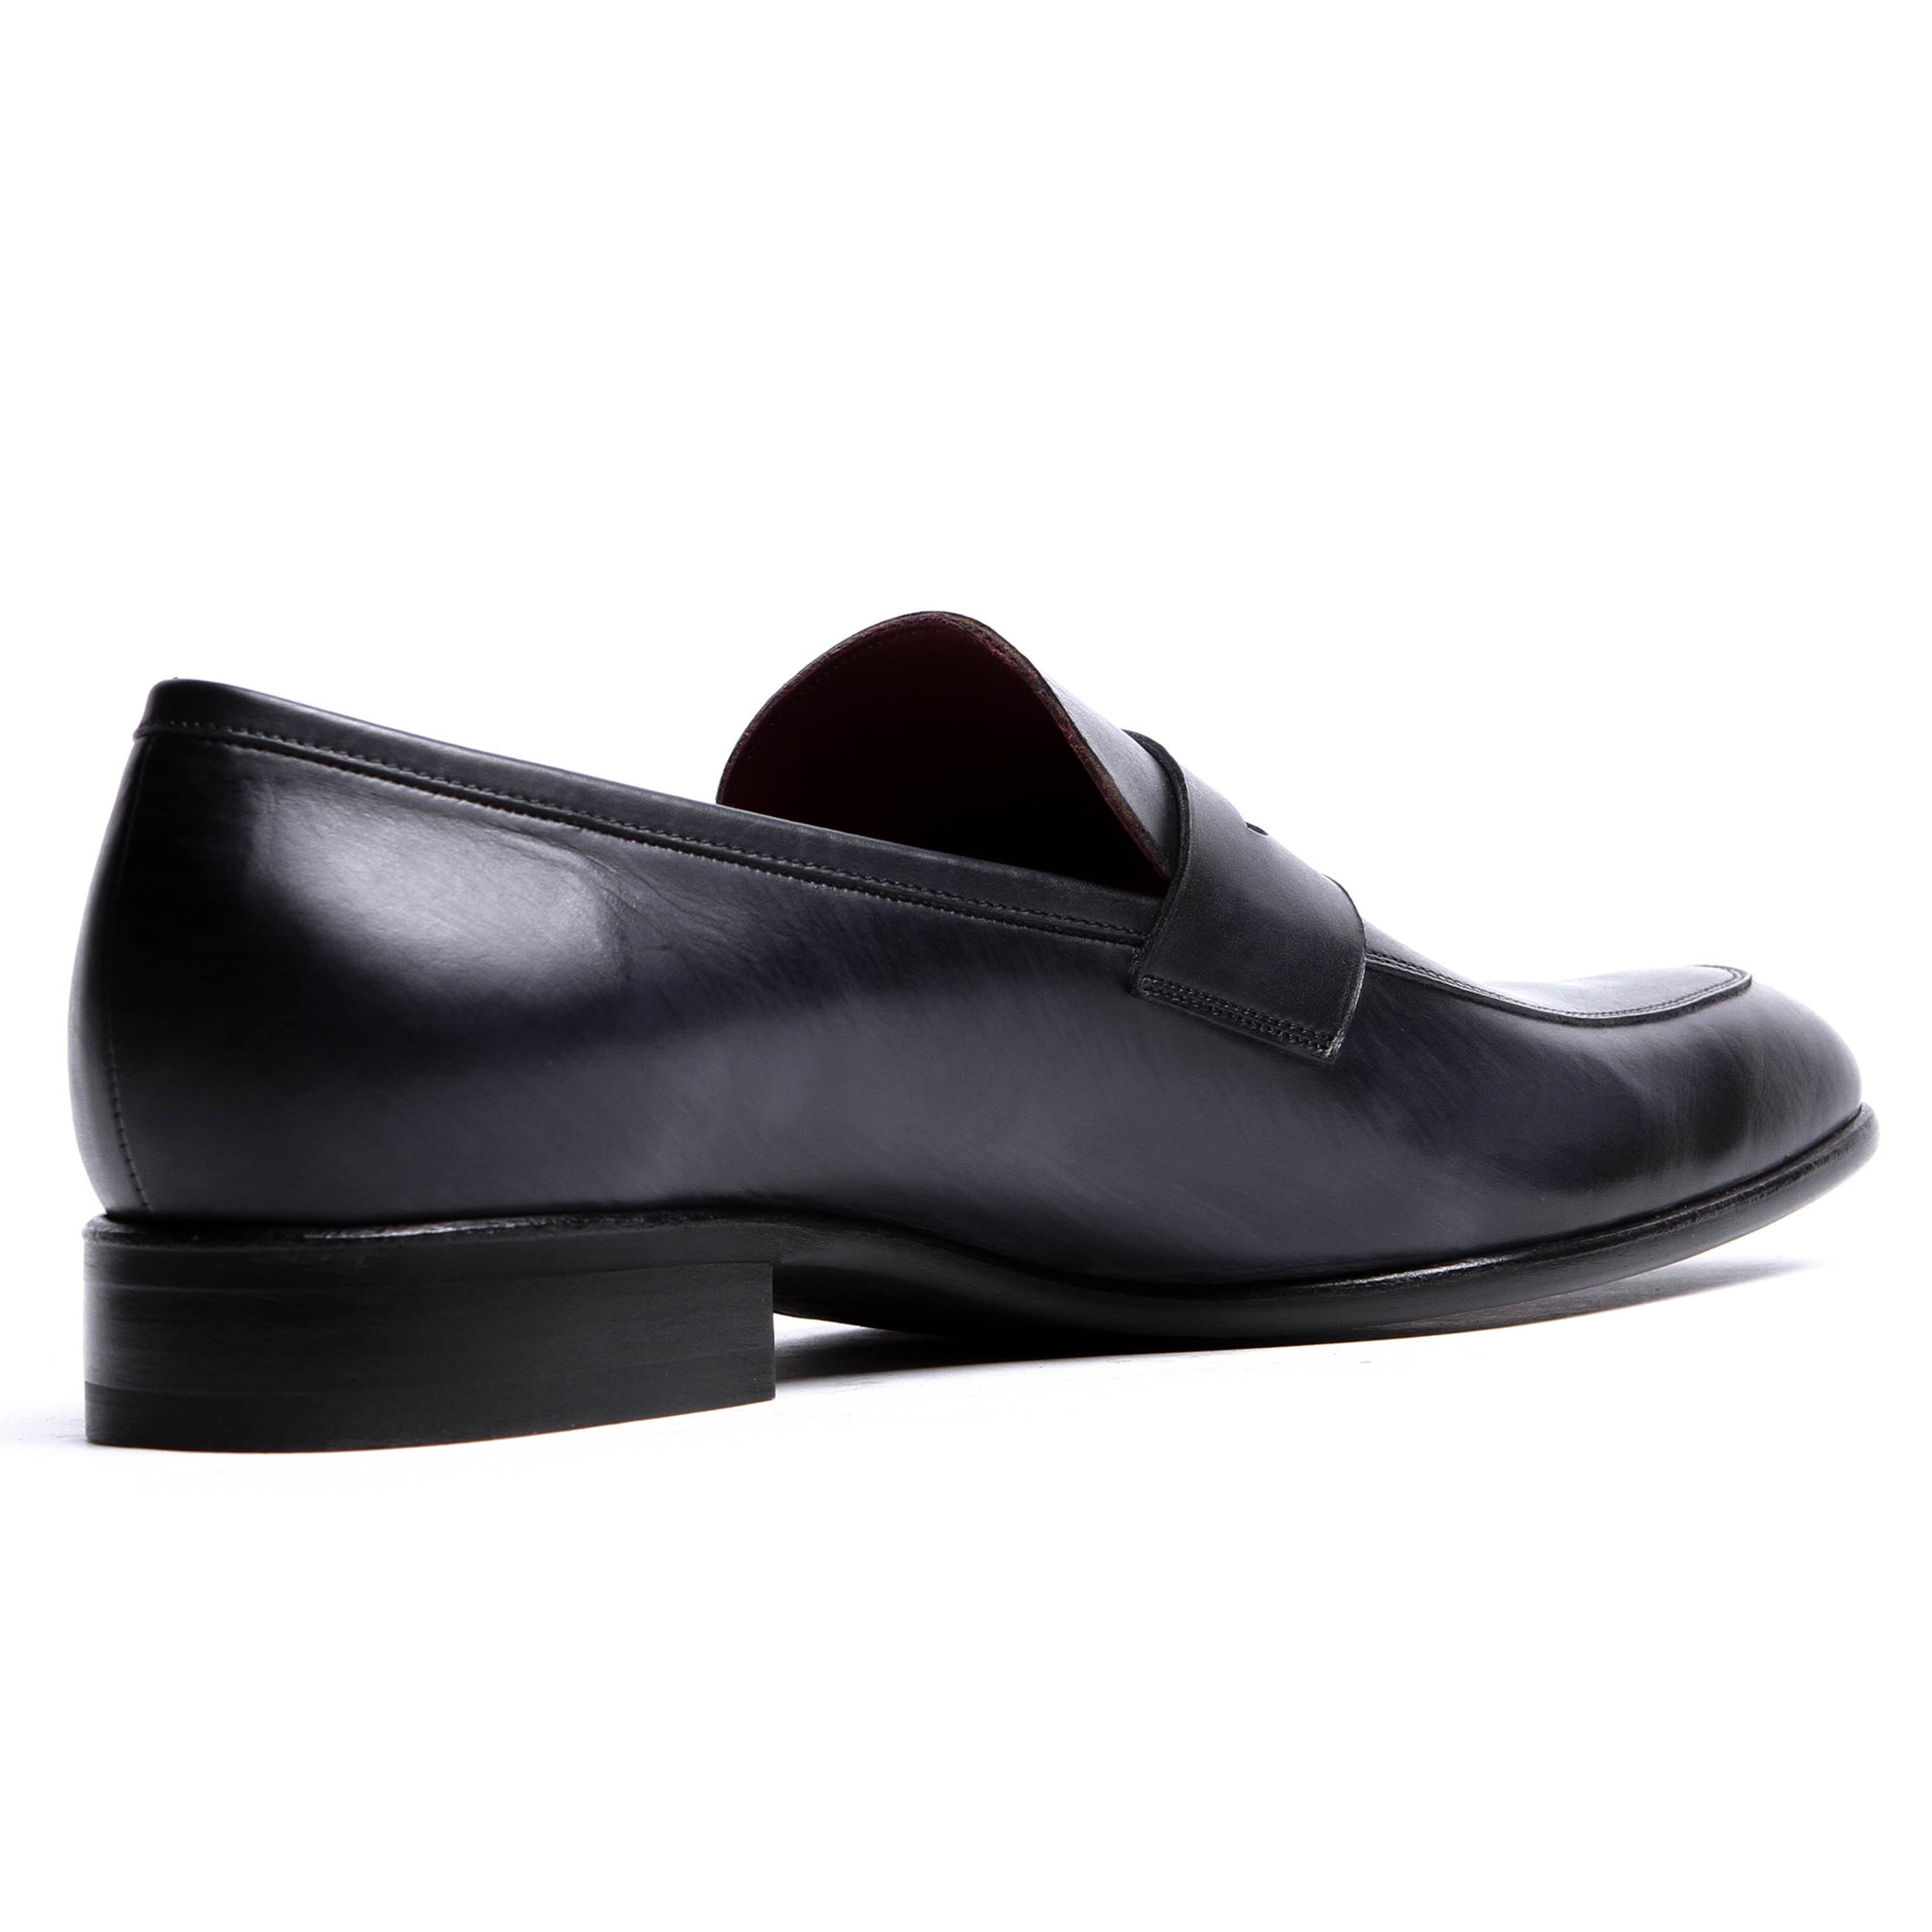 Masterpiece Penny Loafer - Black